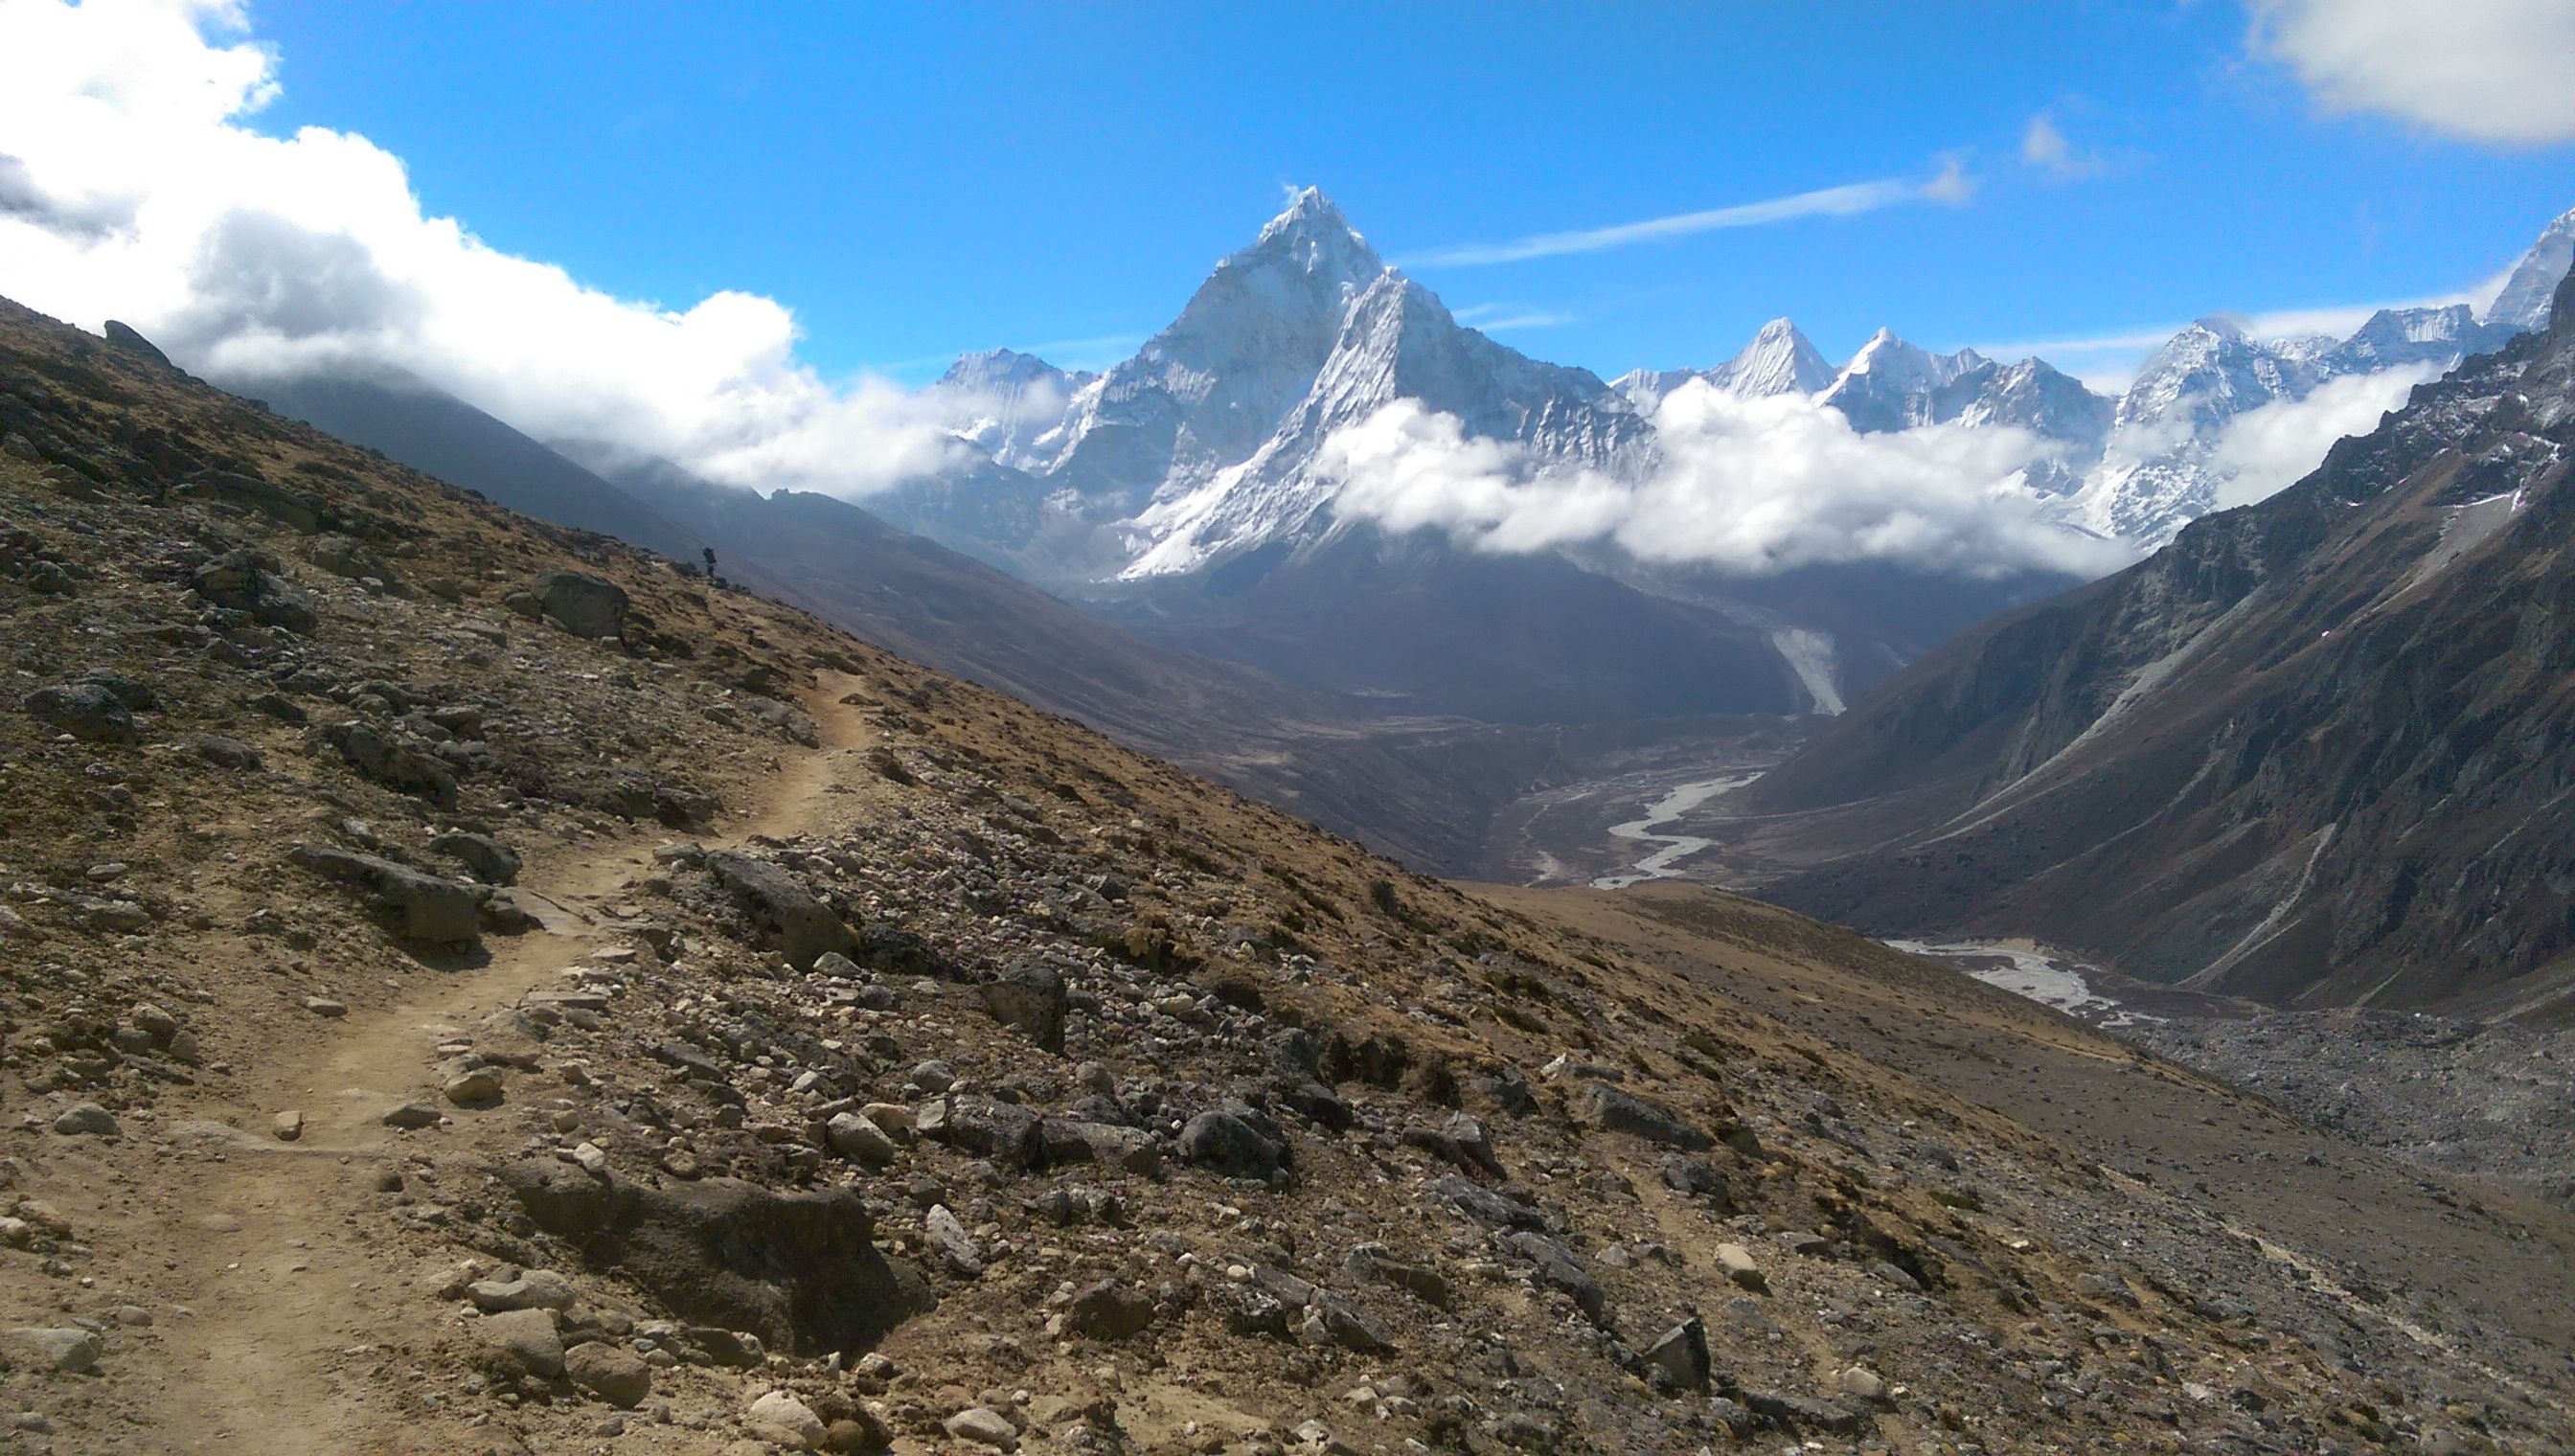 nepal travel: tips and essential info